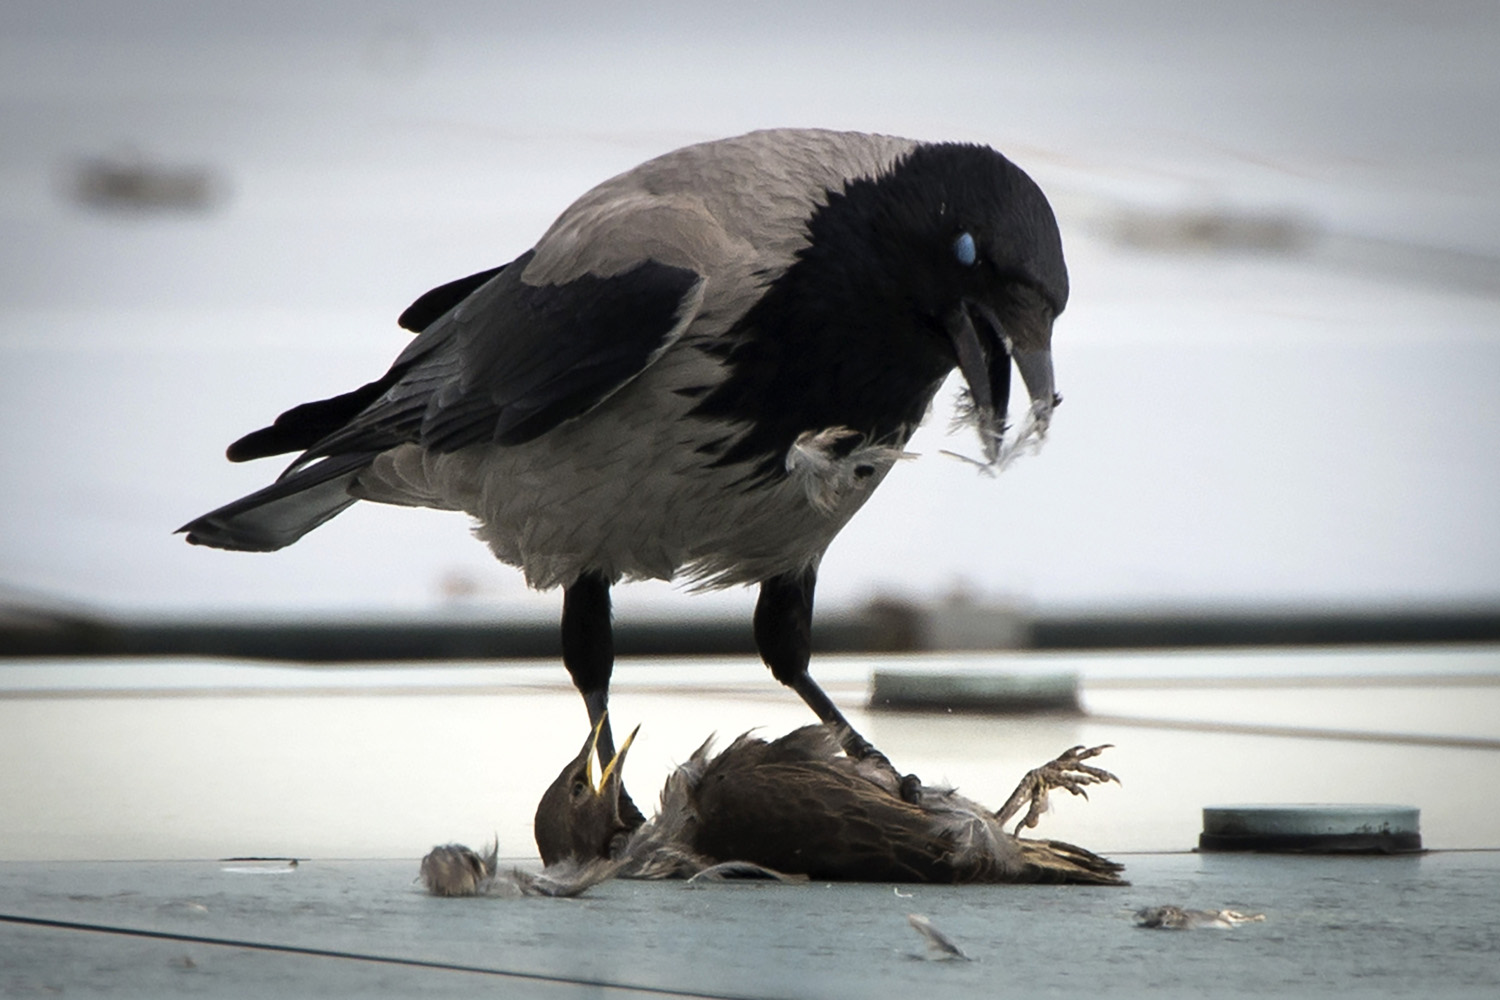 A crow eats its prey sitting on the roof of the Chancellery in Berlin on May 6, 2014.